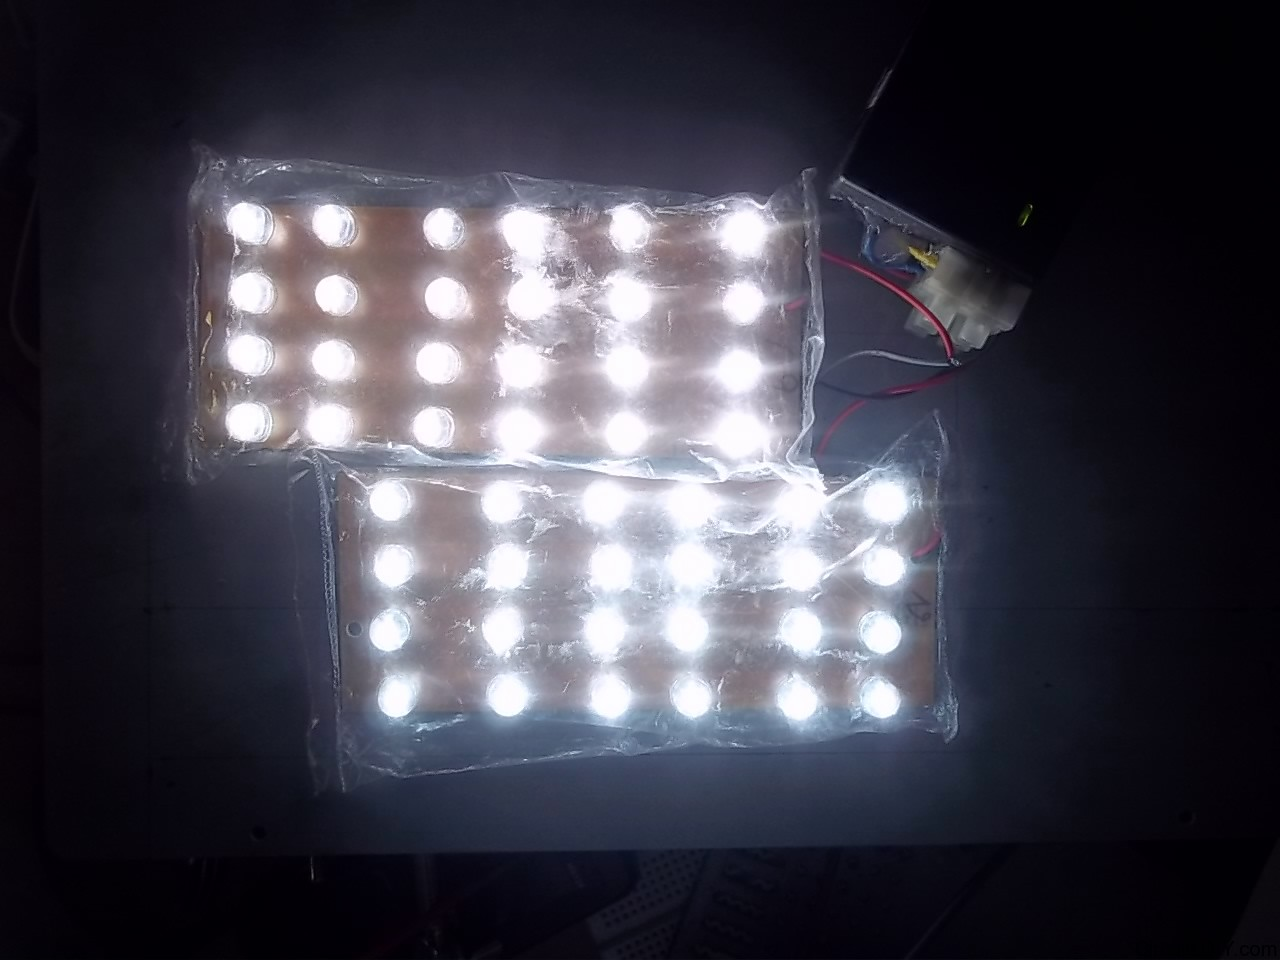 Diy Led Driver For 5watt Leds 12v Strips From 100 240 Vac Watt Circuit View 3 This Is The In Action